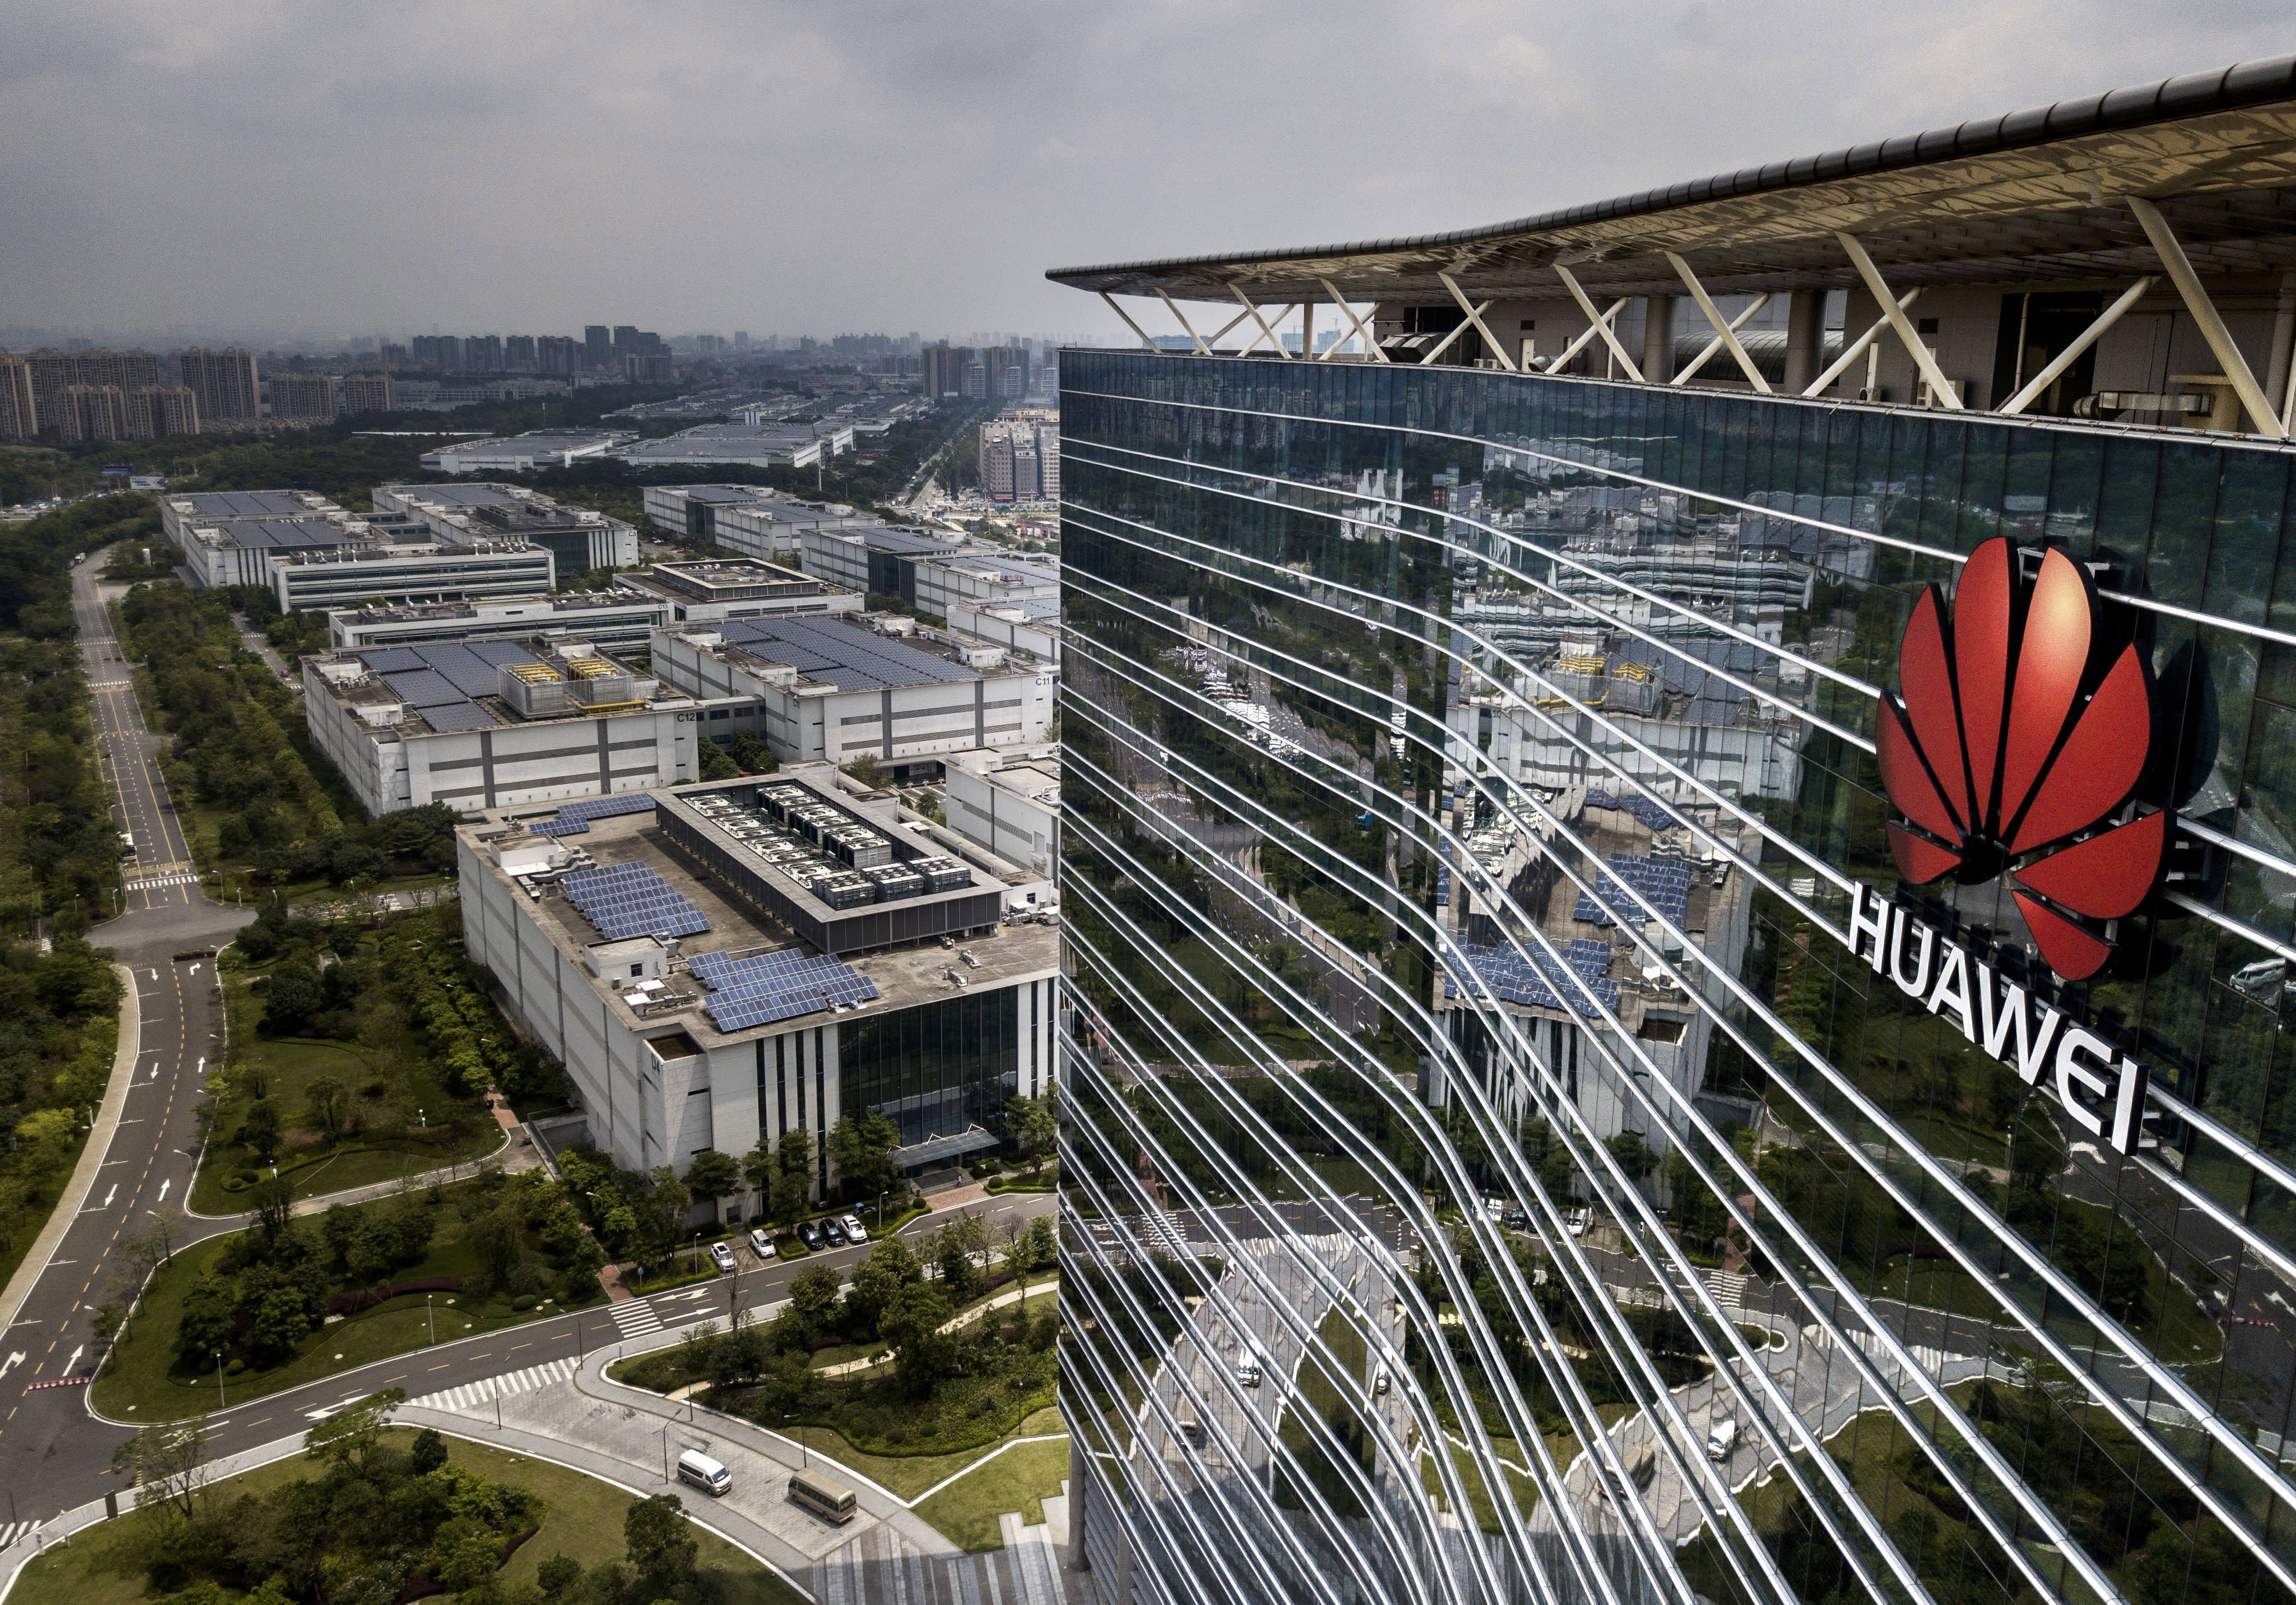 The Huawei logo is seen on the side of the main building at the company's production campus on April 25, 2019 in Dongguan, near Shenzhen, China.